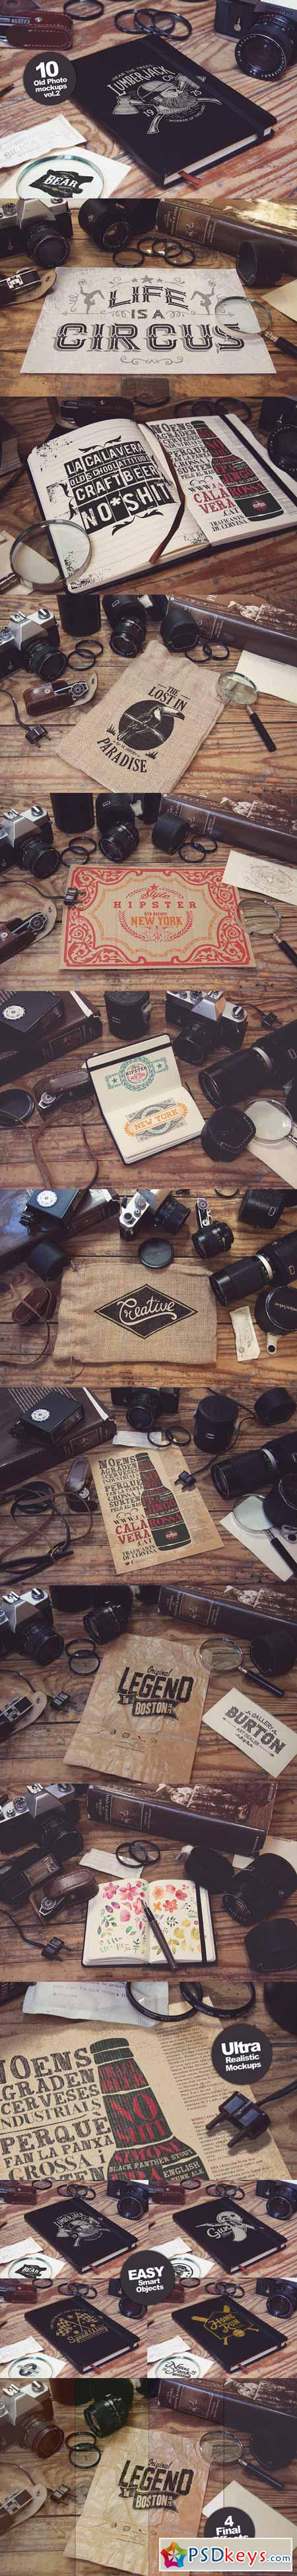 10 Old Photo Mockups vol.2 482386